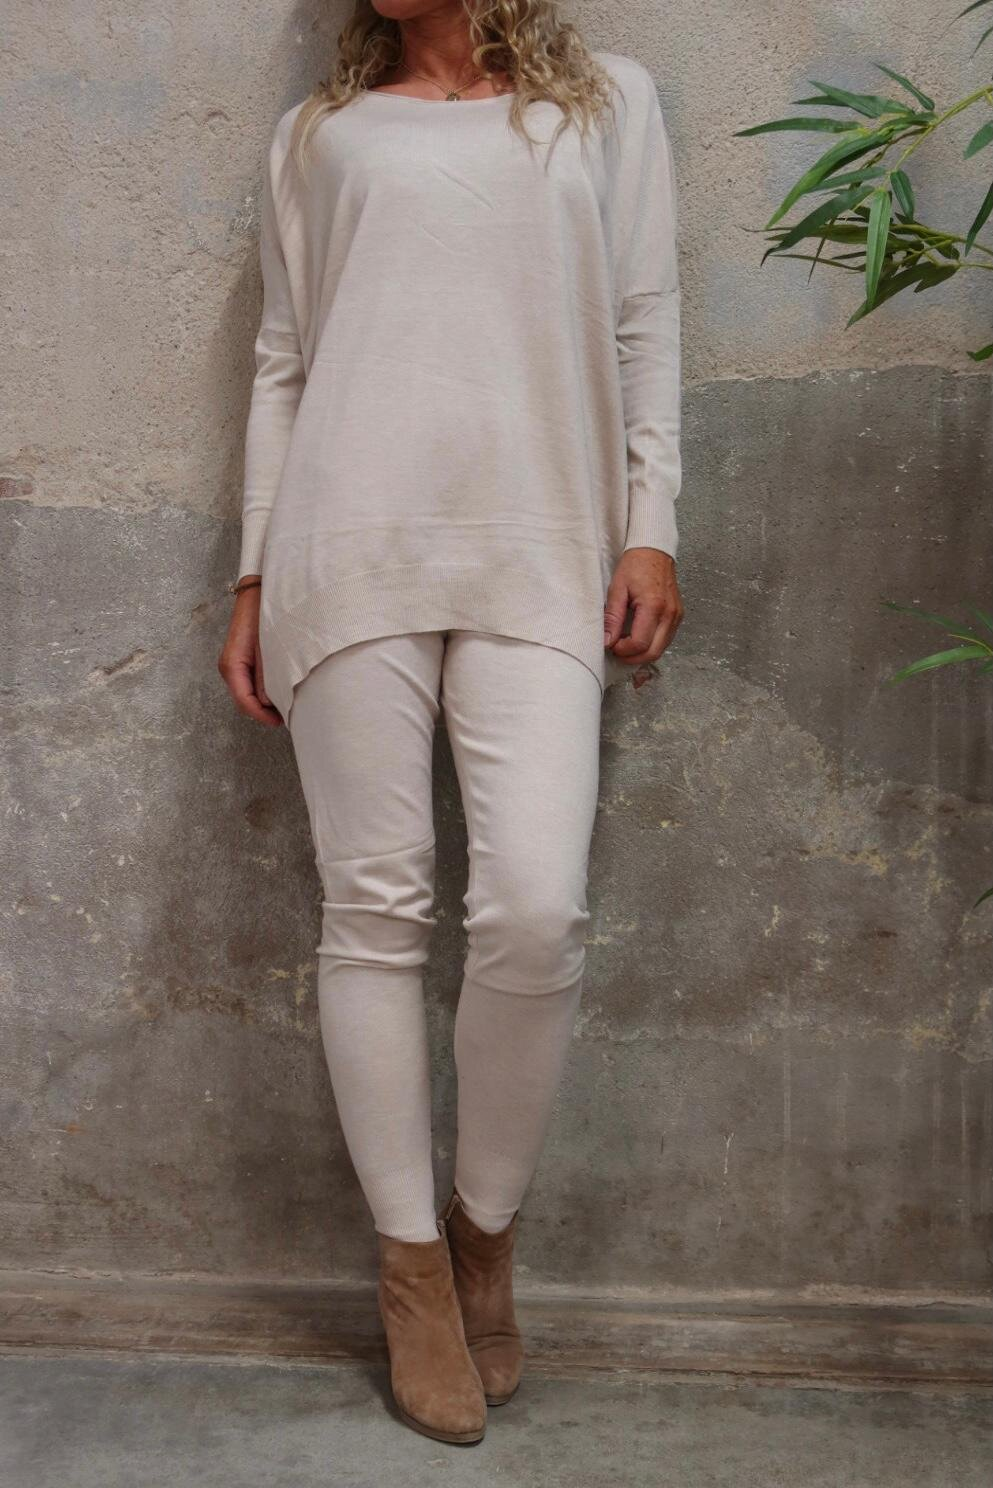 Brittany - Knitted set - Sweater and Trousers -Beige